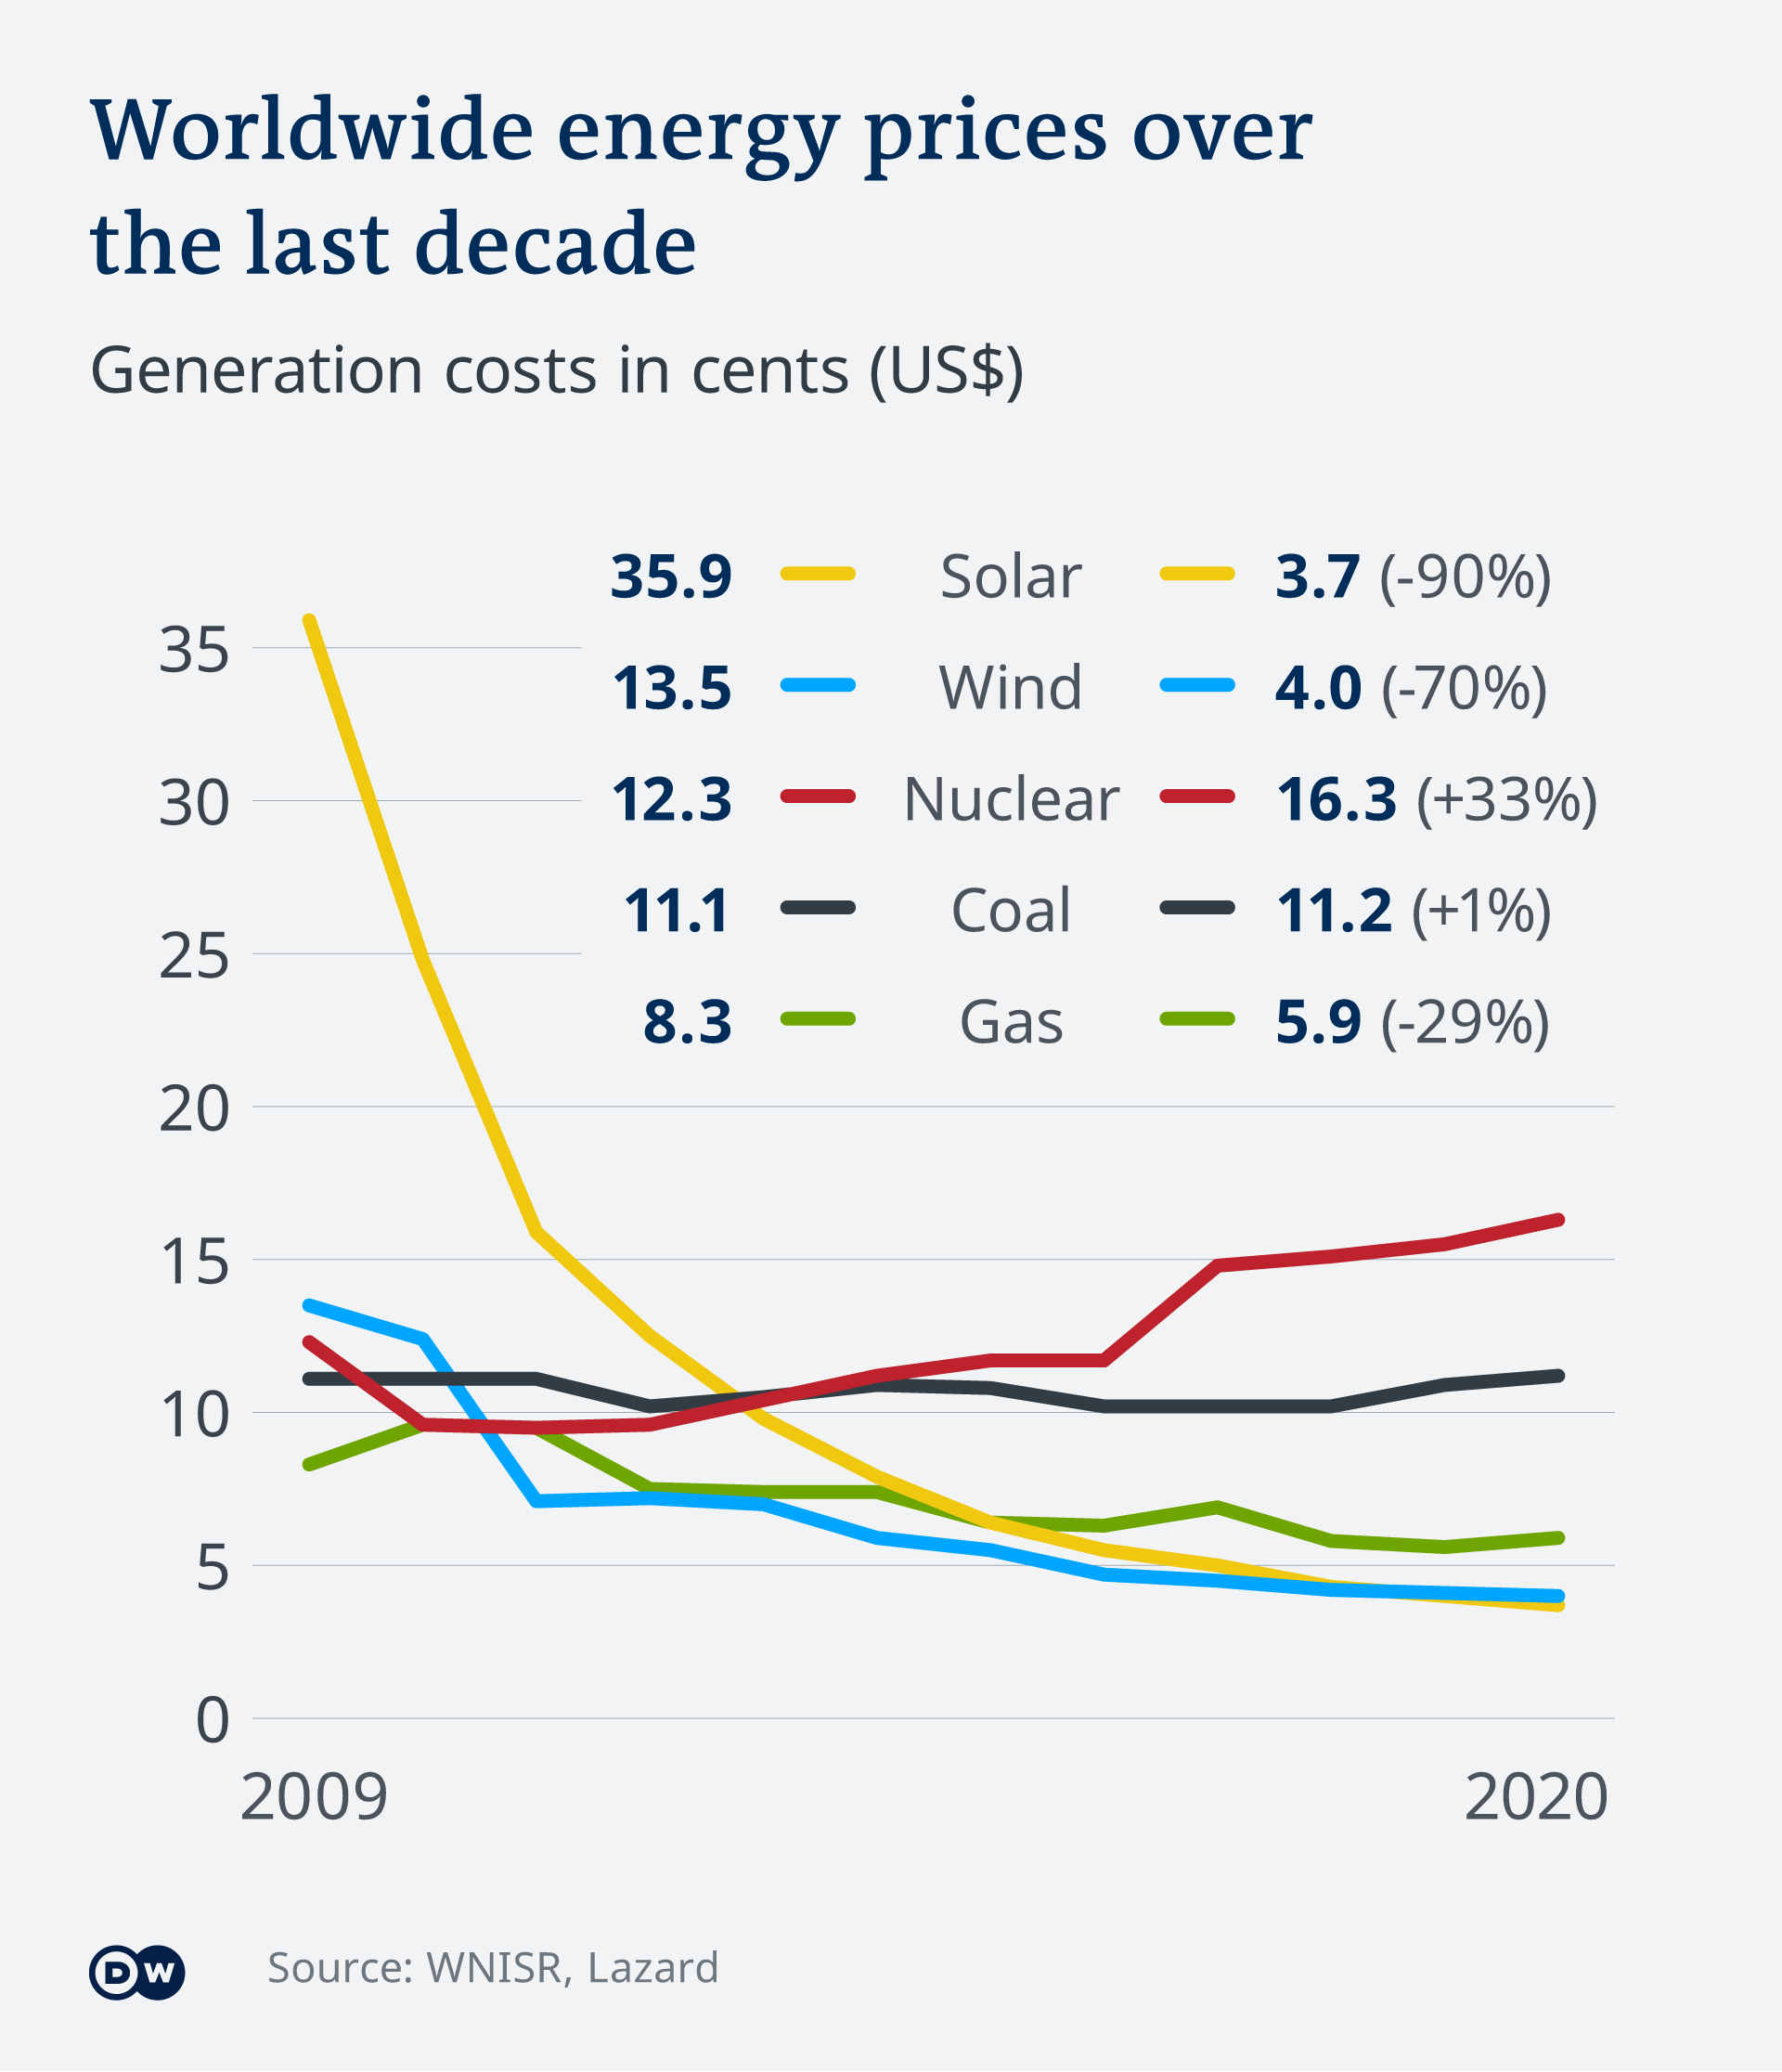 An infographic showing worldwide energy prices           over the last decade